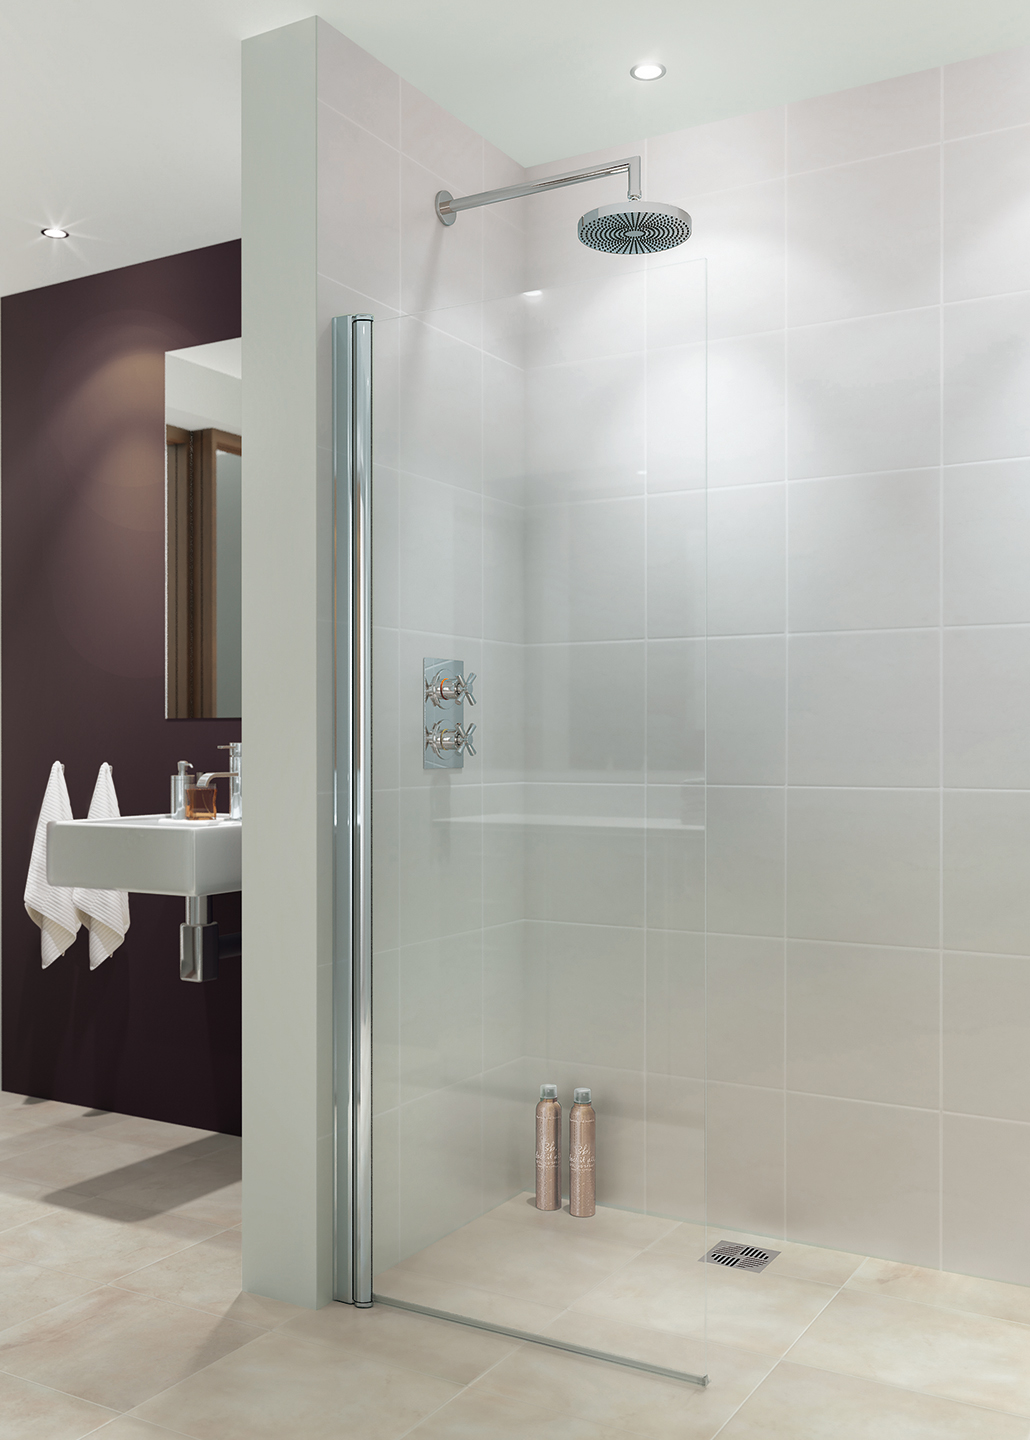 Coastline Collection Lakes Showering Spaces